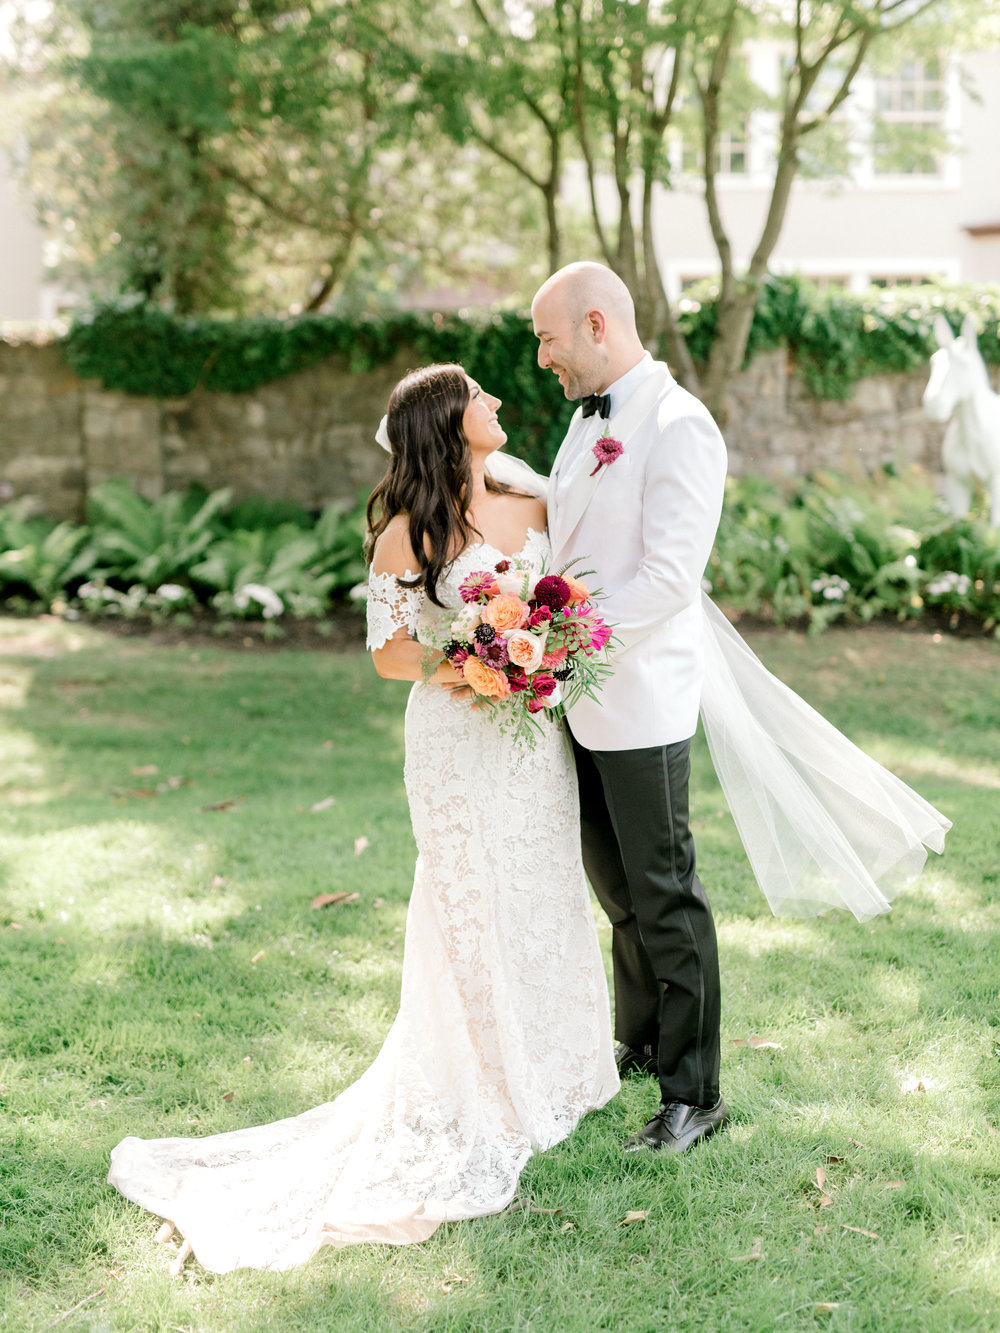 Lindsay and James made for the perfect combination of classic and modern with their black and white style and bright colorful flowers.